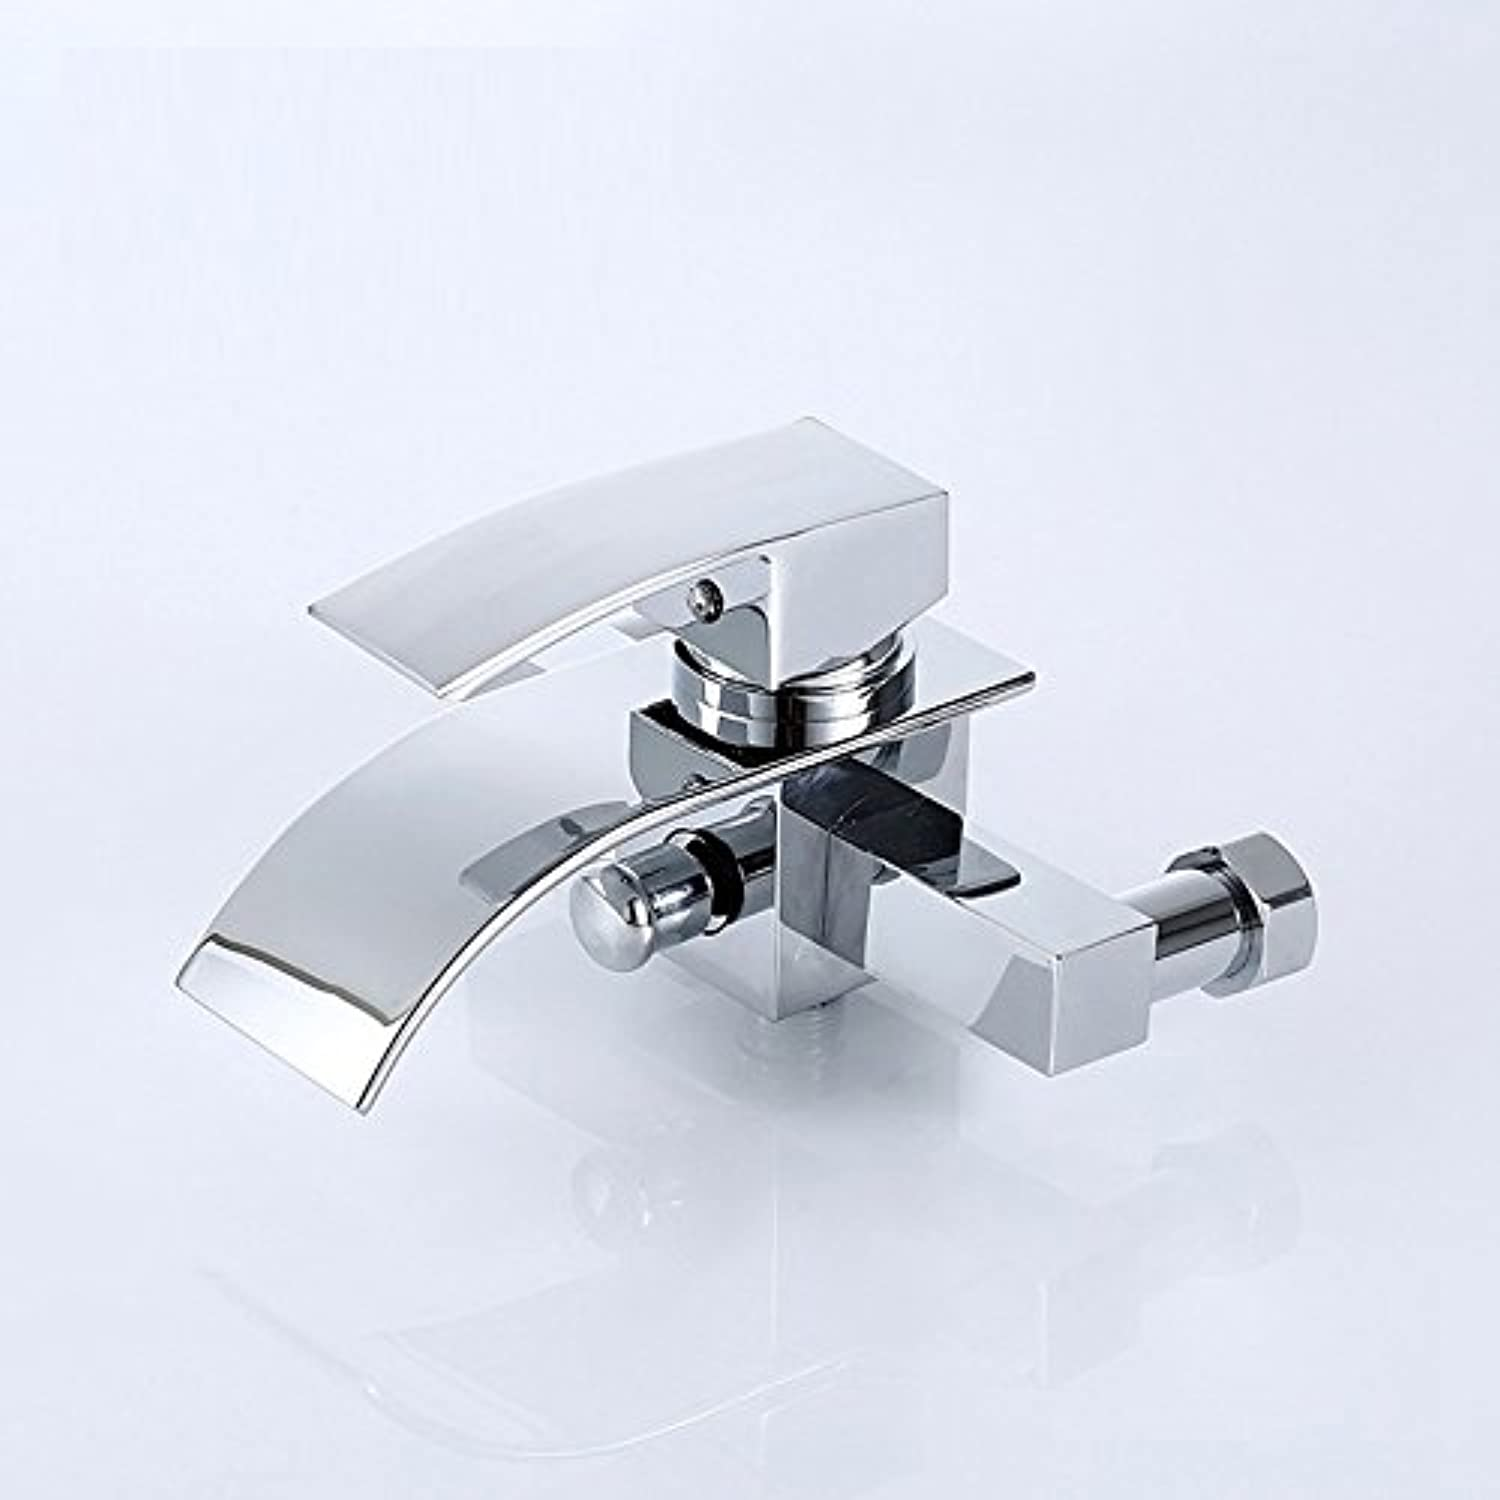 WINZSC Hot and cold shower faucet copper triple bathtub faucet wide mouth waterfall faucet wx5241412